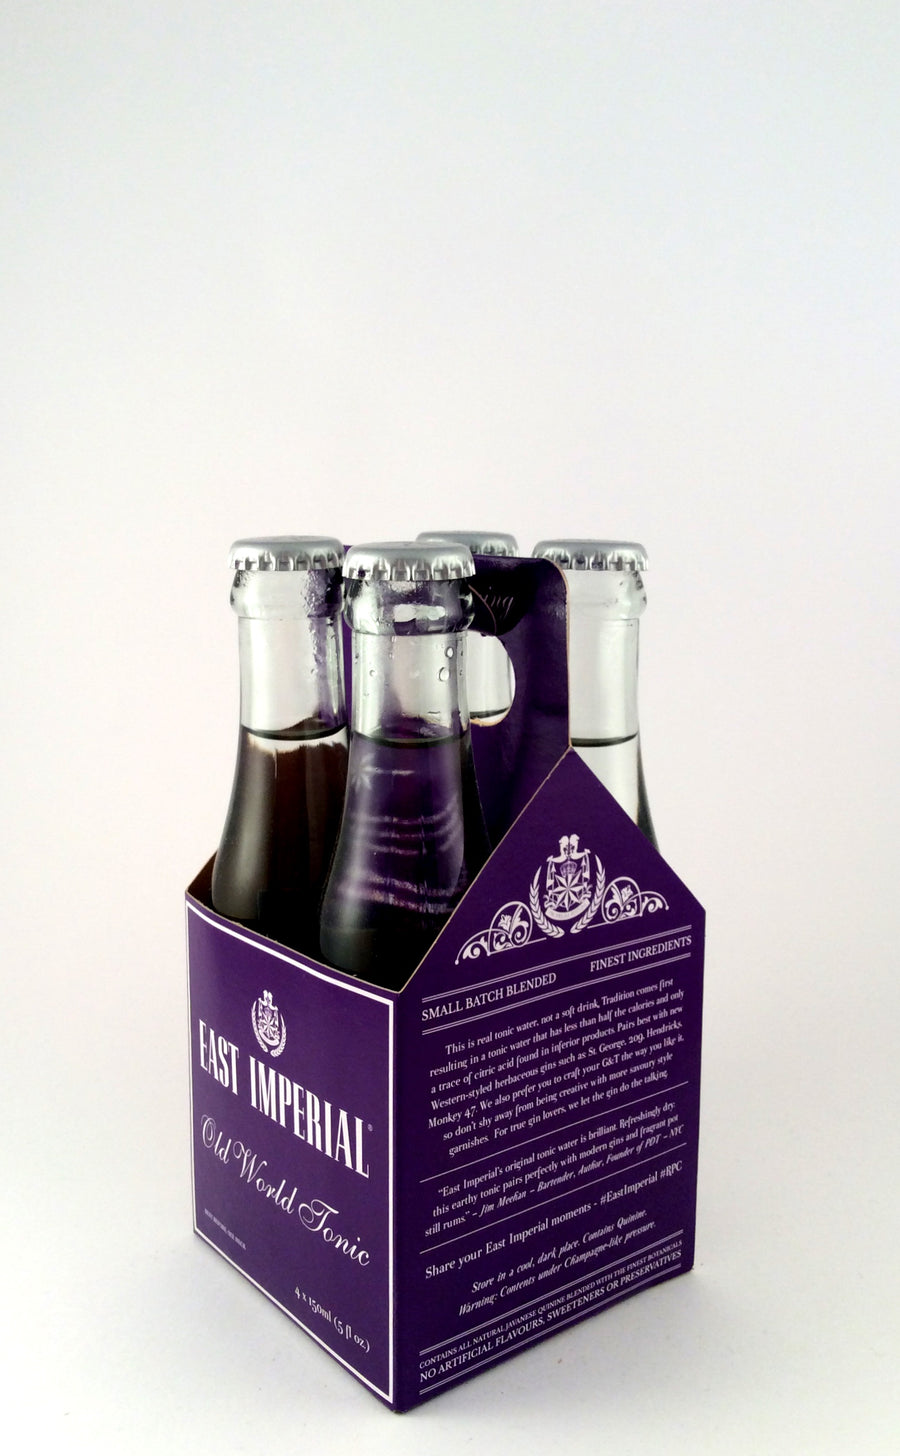 East Imperial Purple Old World Tonic 4 pack-Wineseeker